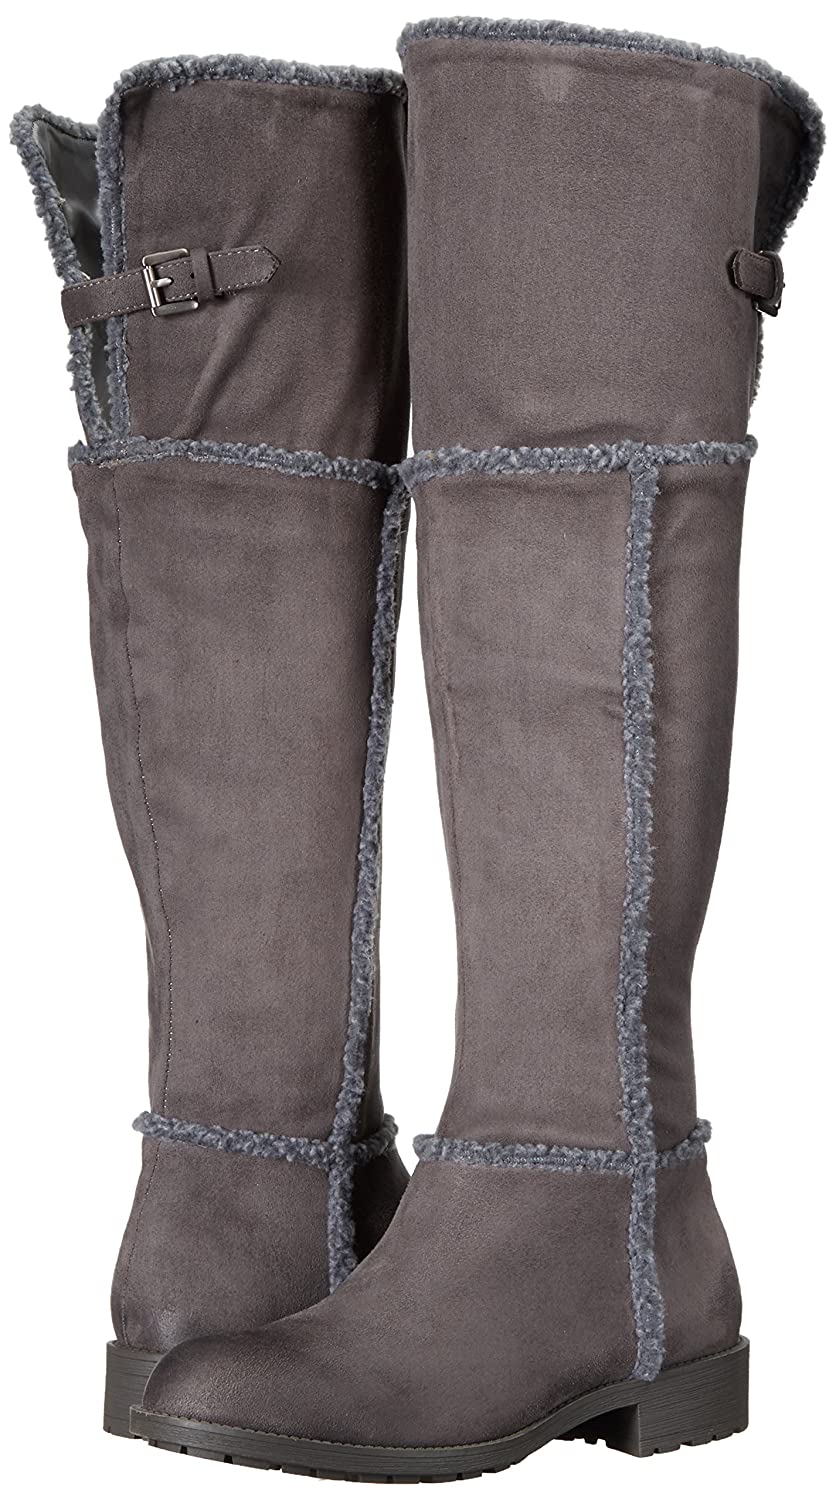 Style by Charles David Womens Conner Motorcycle Boot